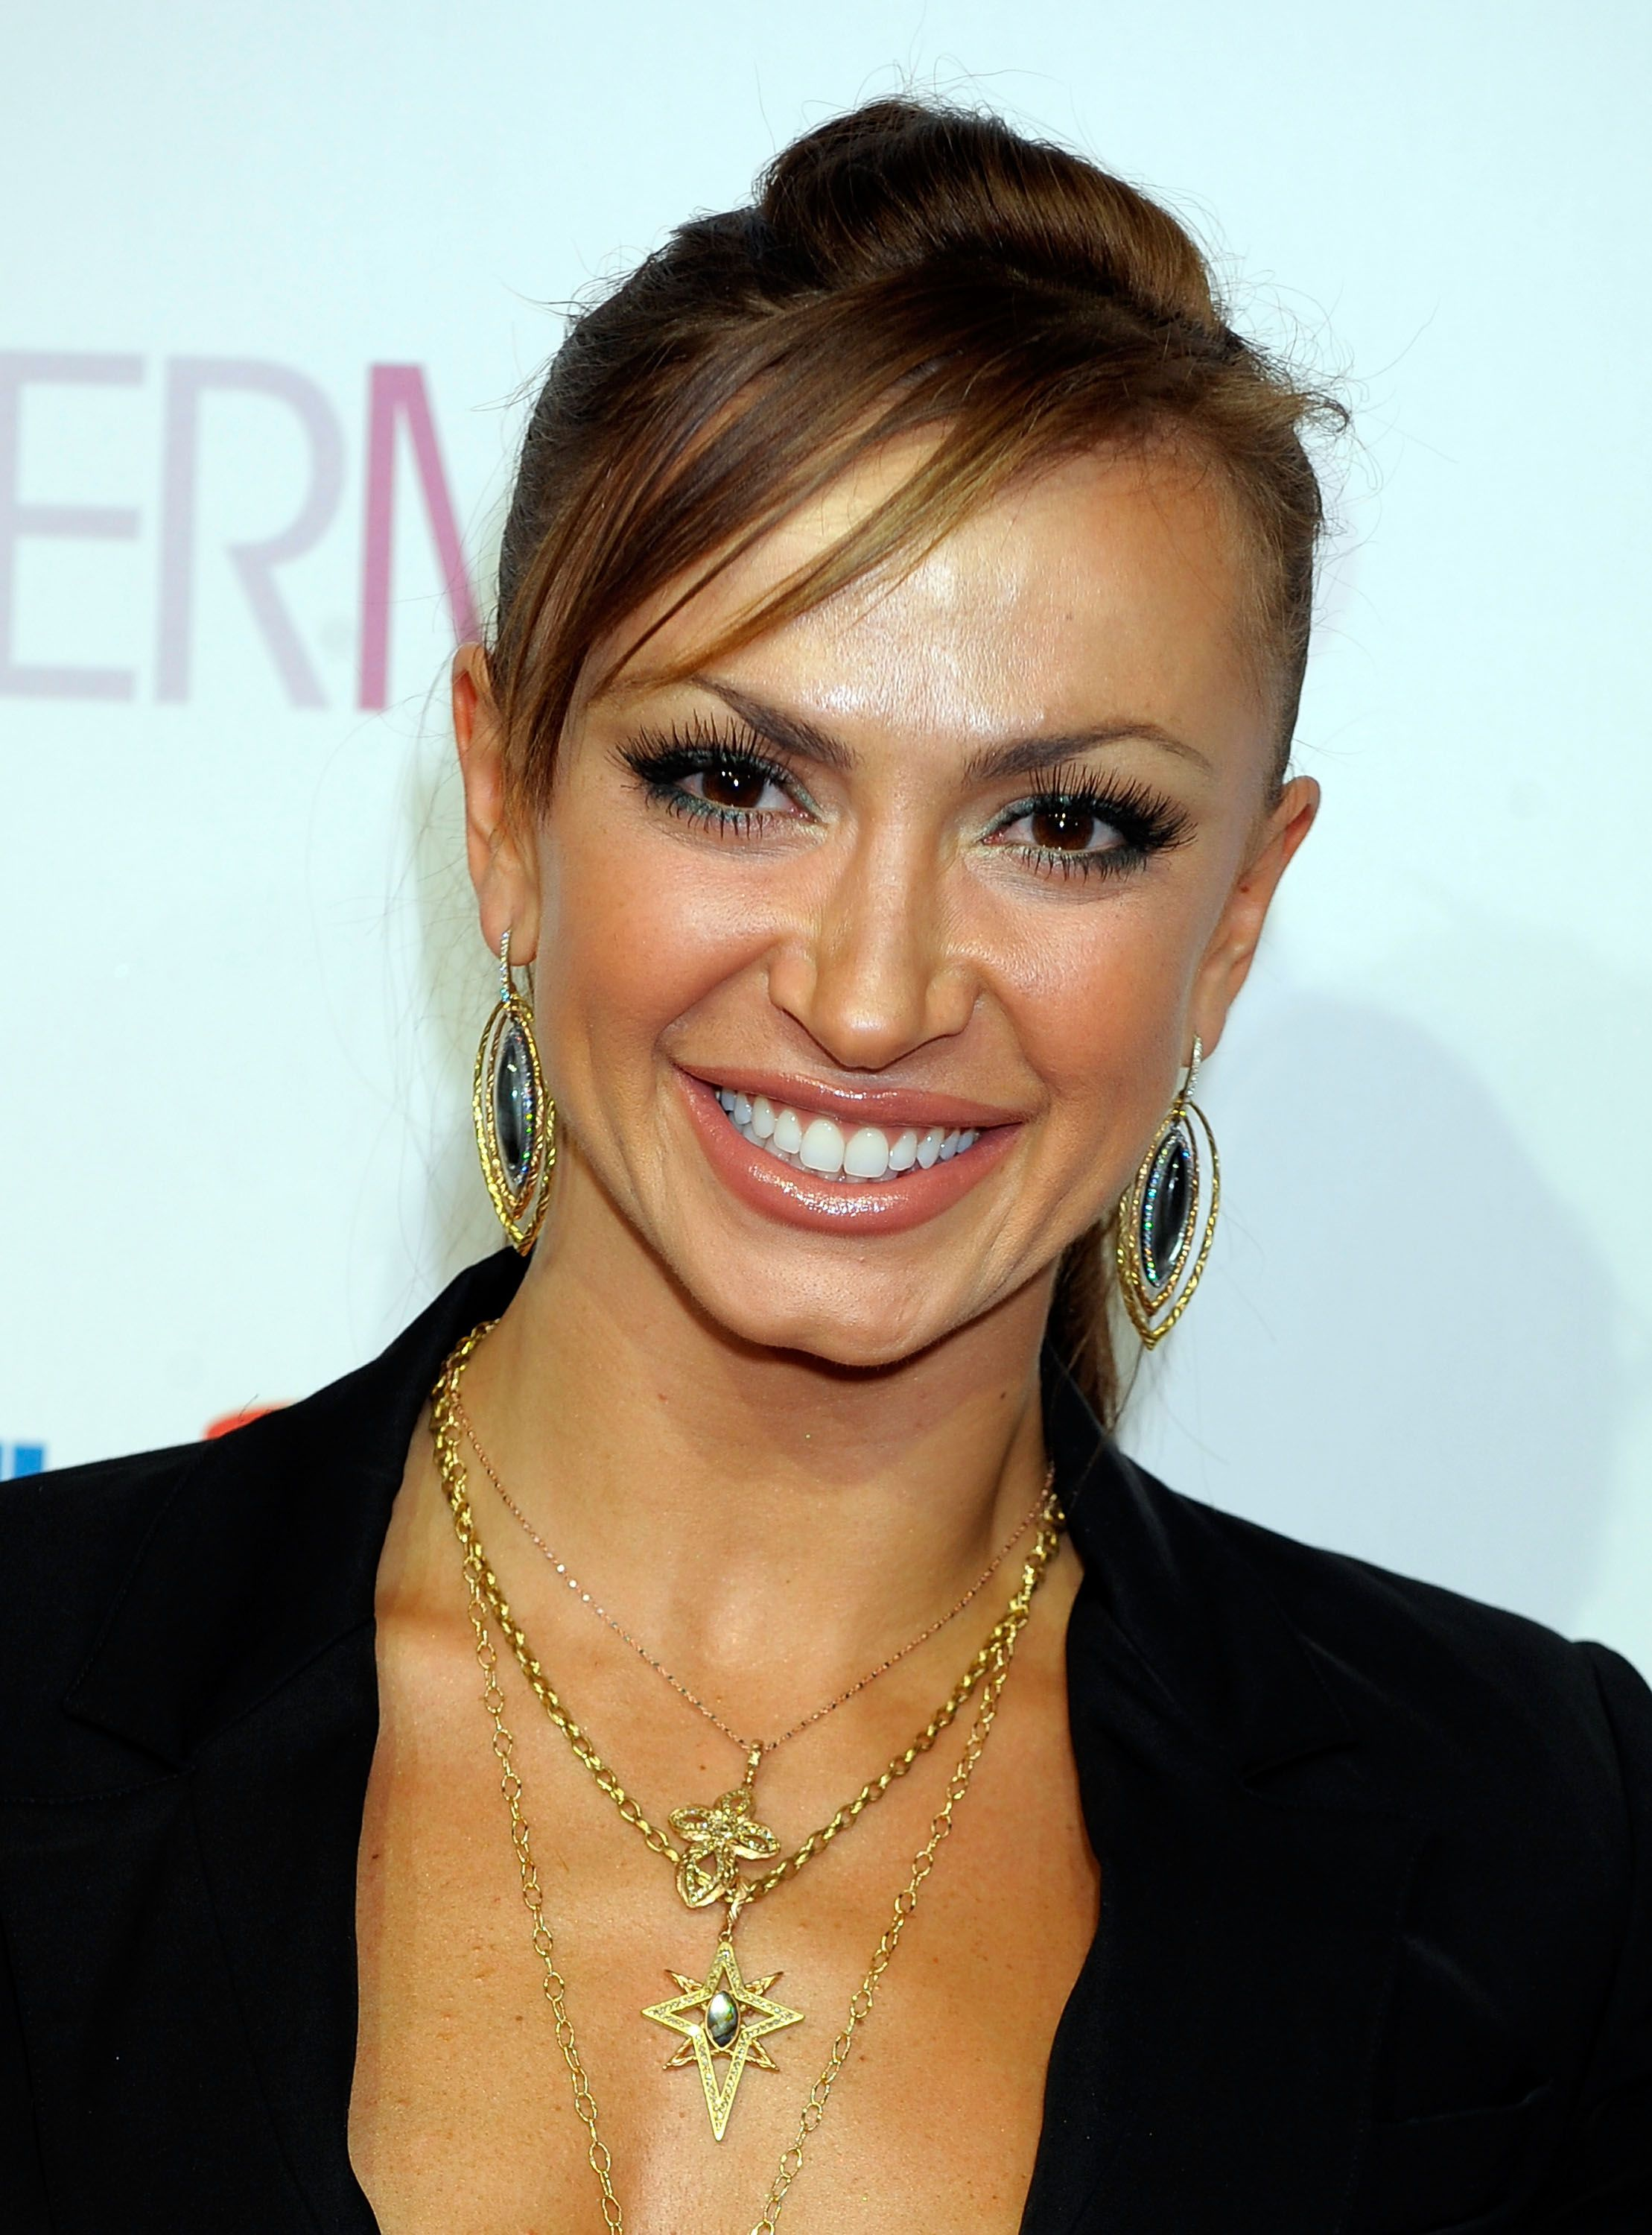 karina smirnoff playboy magazinekarina smirnoff dance, karina smirnoff floyd mayweather, karina smirnoff instagram, karina smirnoff playboy magazine, karina smirnoff slavik kryklyvyy, karina smirnoff height and weight, karina smirnoff 2016, karina smirnoff mario lopez, karina smirnoff dance studio, karina smirnoff husband, karina smirnoff, karina smirnoff married, karina smirnoff wedding, karina smirnoff engaged, карина смирнофф, karina smirnoff twitter, karina smirnoff dancing with the stars, karina smirnoff boyfriend, karina smirnoff say yes to the dress, karina smirnoff and jason adelman